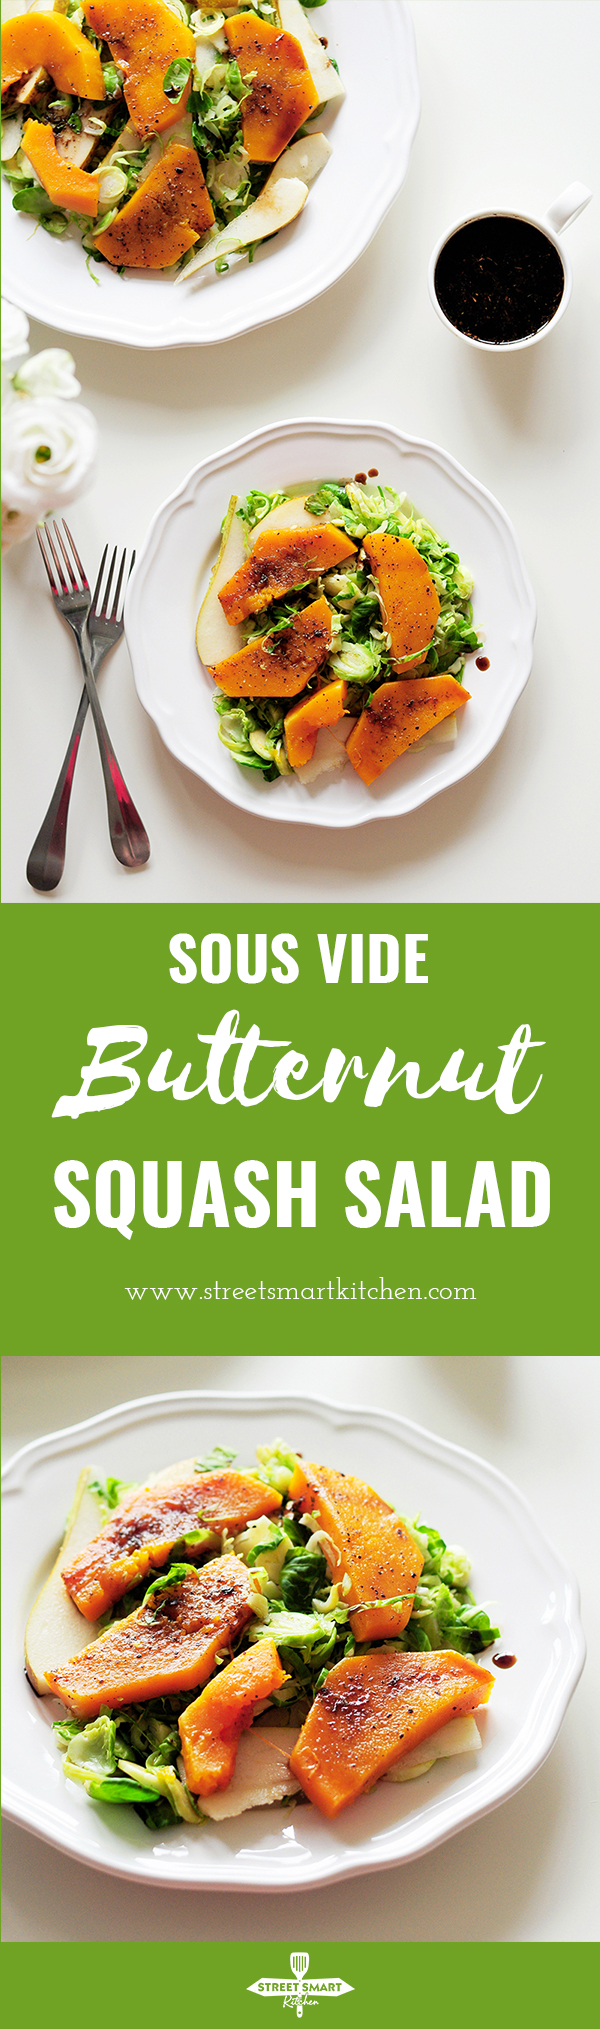 This sous vide butternut squash salad comes with an extra punch of flavor from pears, Brussels sprouts and a homemade balsamic vinegar glaze.